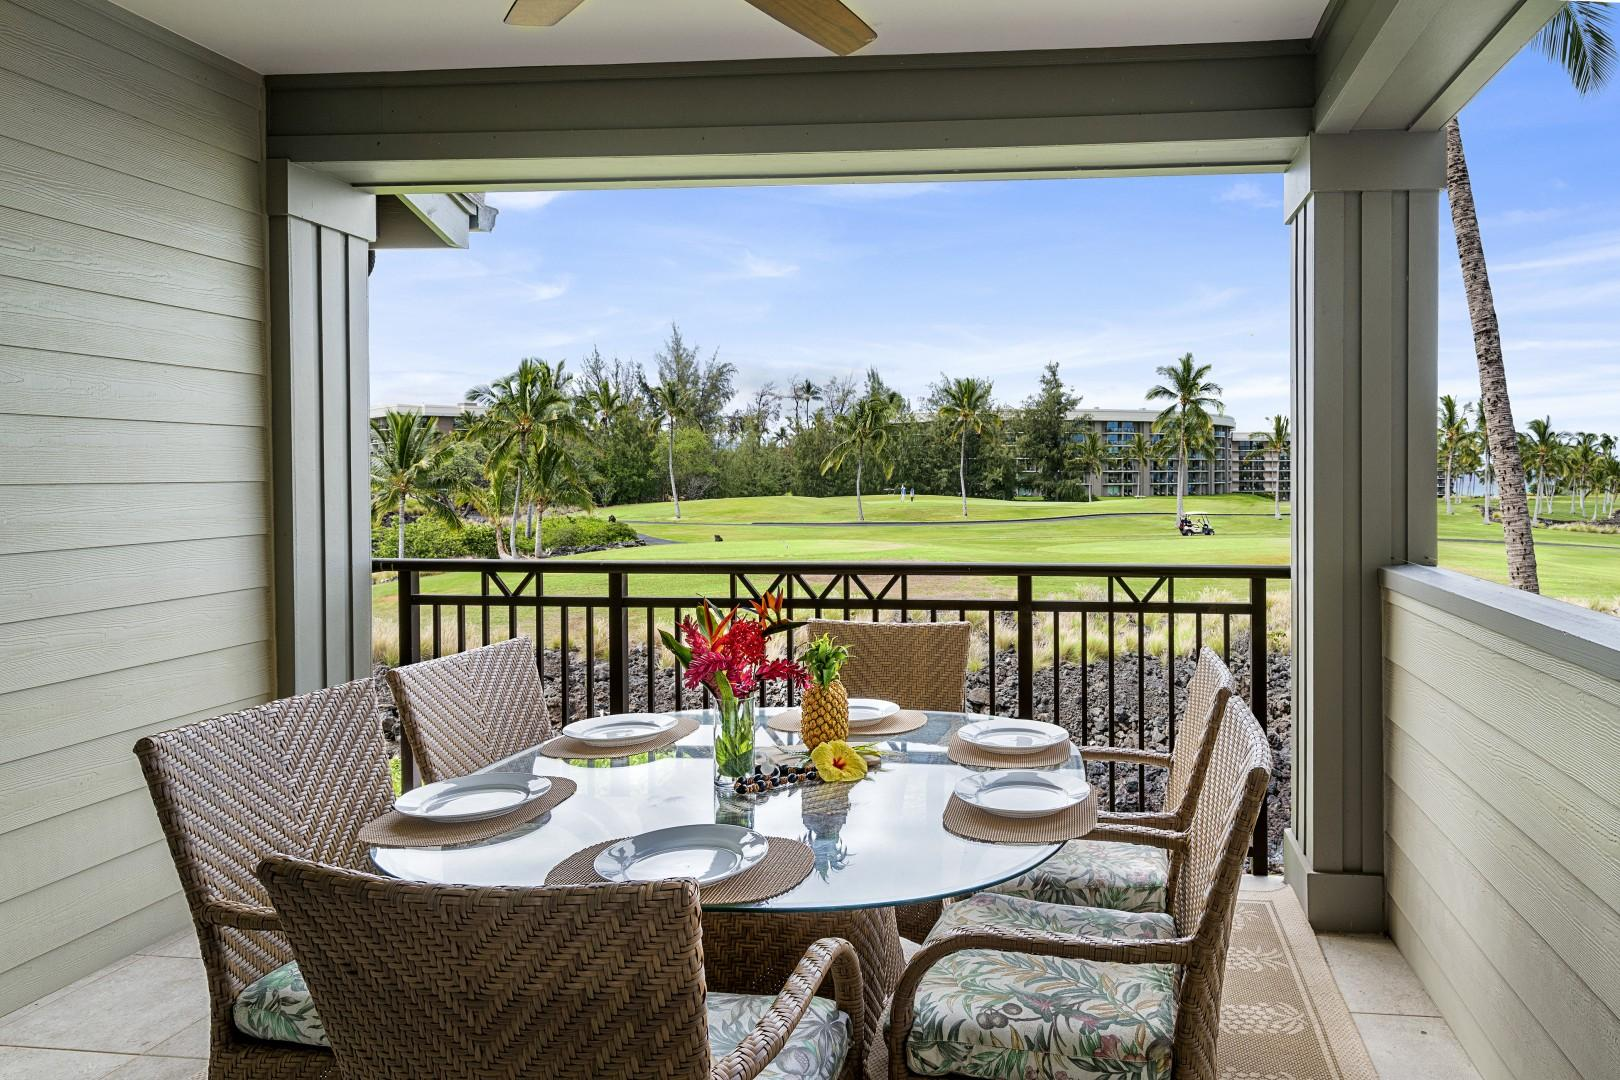 Outdoor Lanai dining for 6!